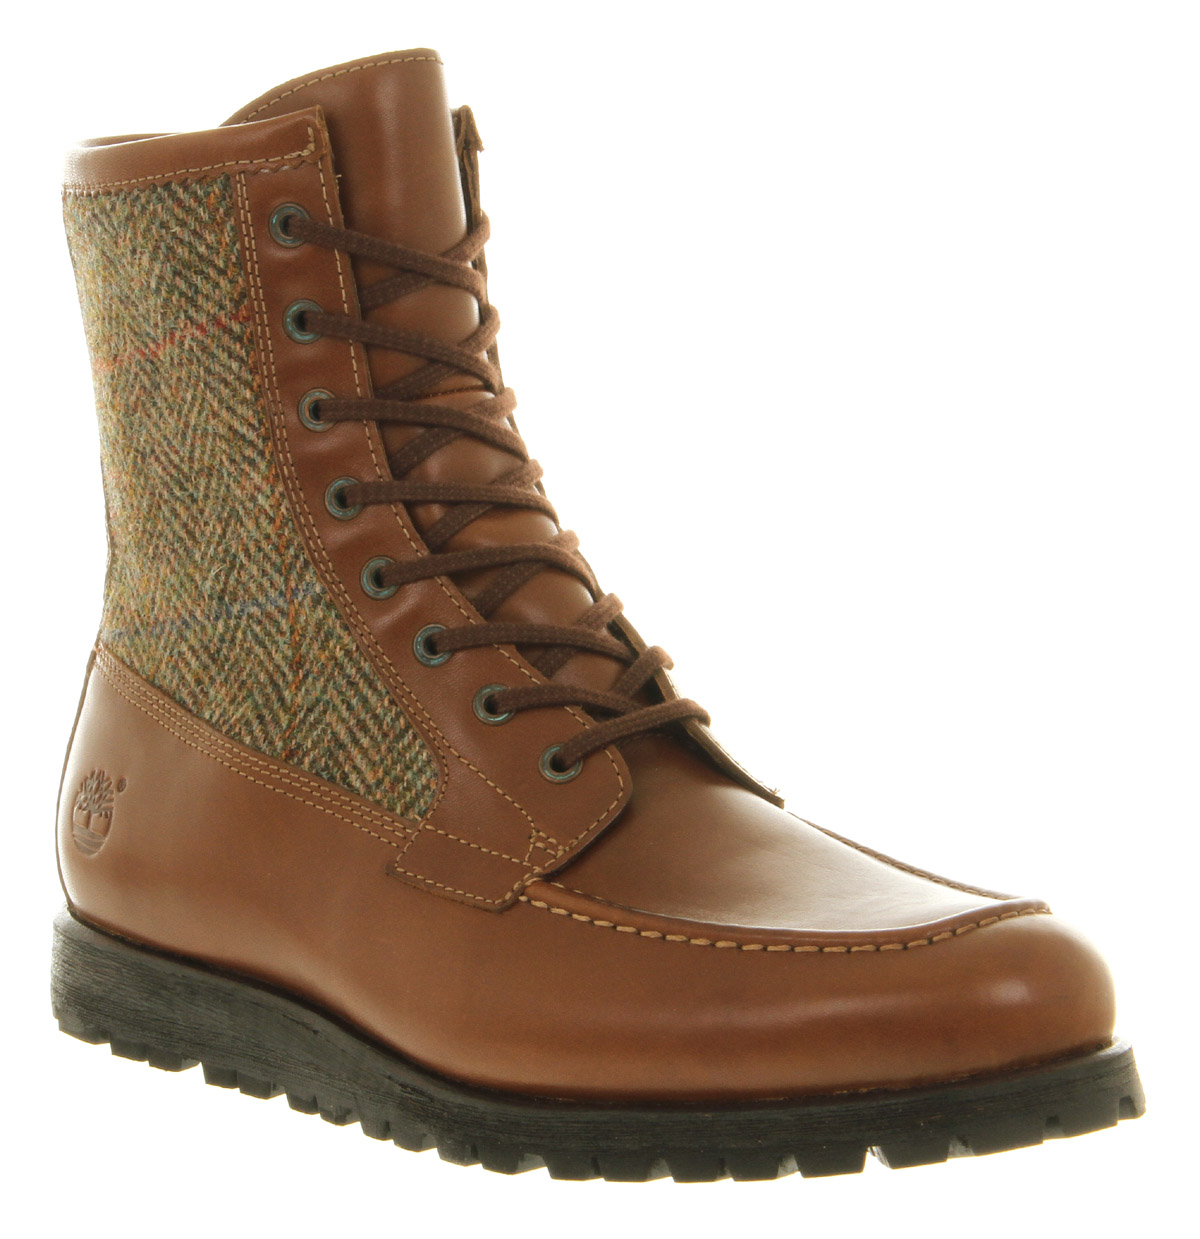 timberland heritage alpine boot brown leather in brown for